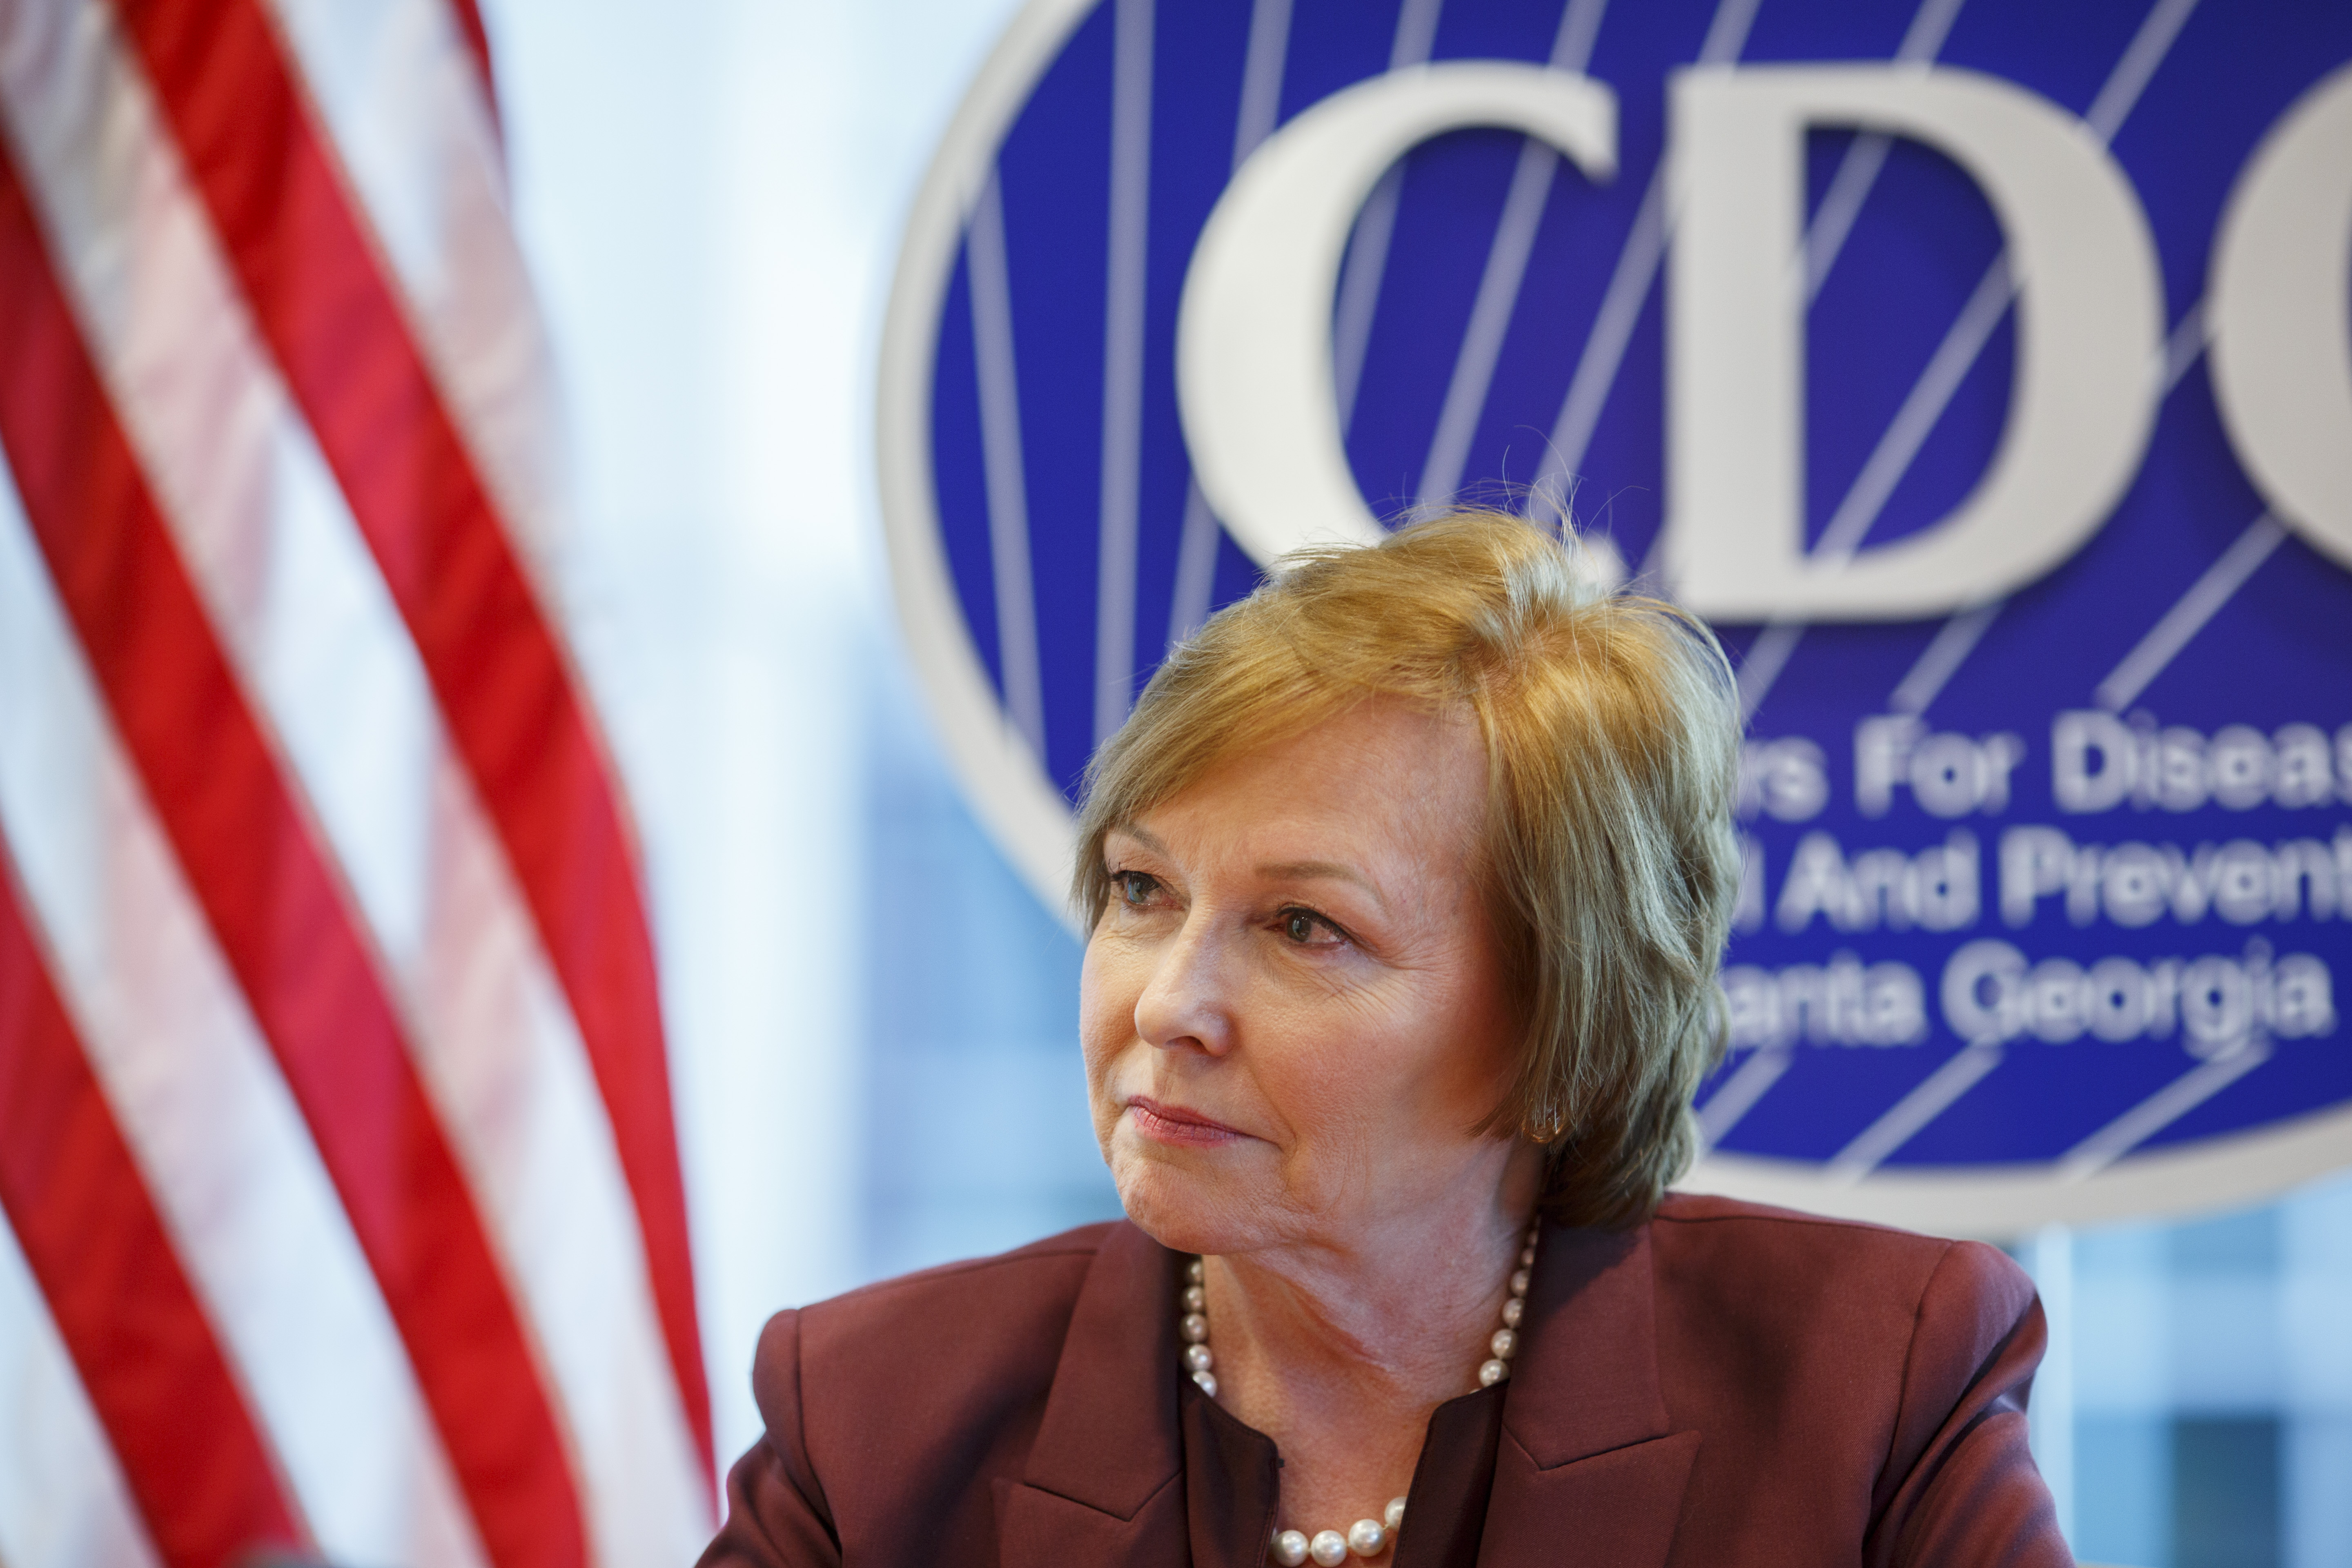 Former Centers for Disease Control and Prevention Director Dr. Brenda Fitzgerald